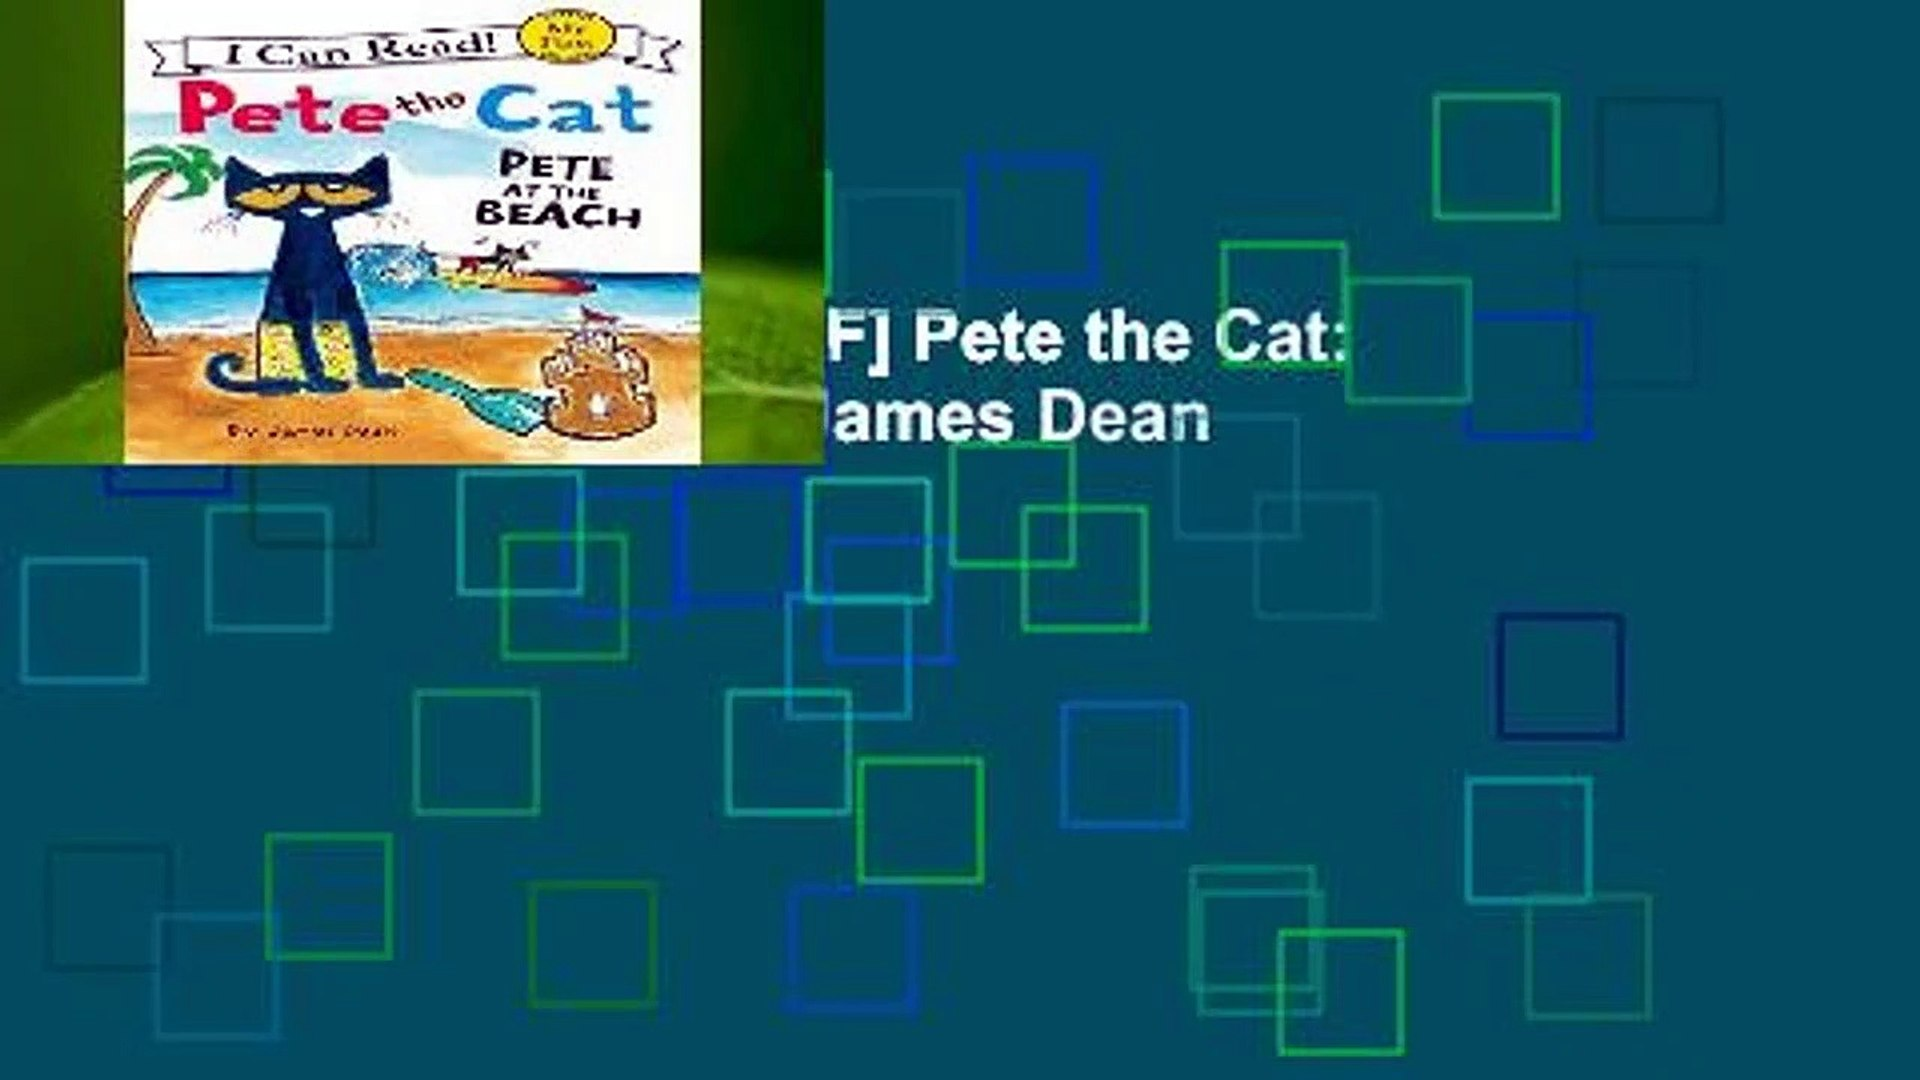 D.O.W.N.L.O.A.D [P.D.F] Pete the Cat: Pete at the Beach by James Dean